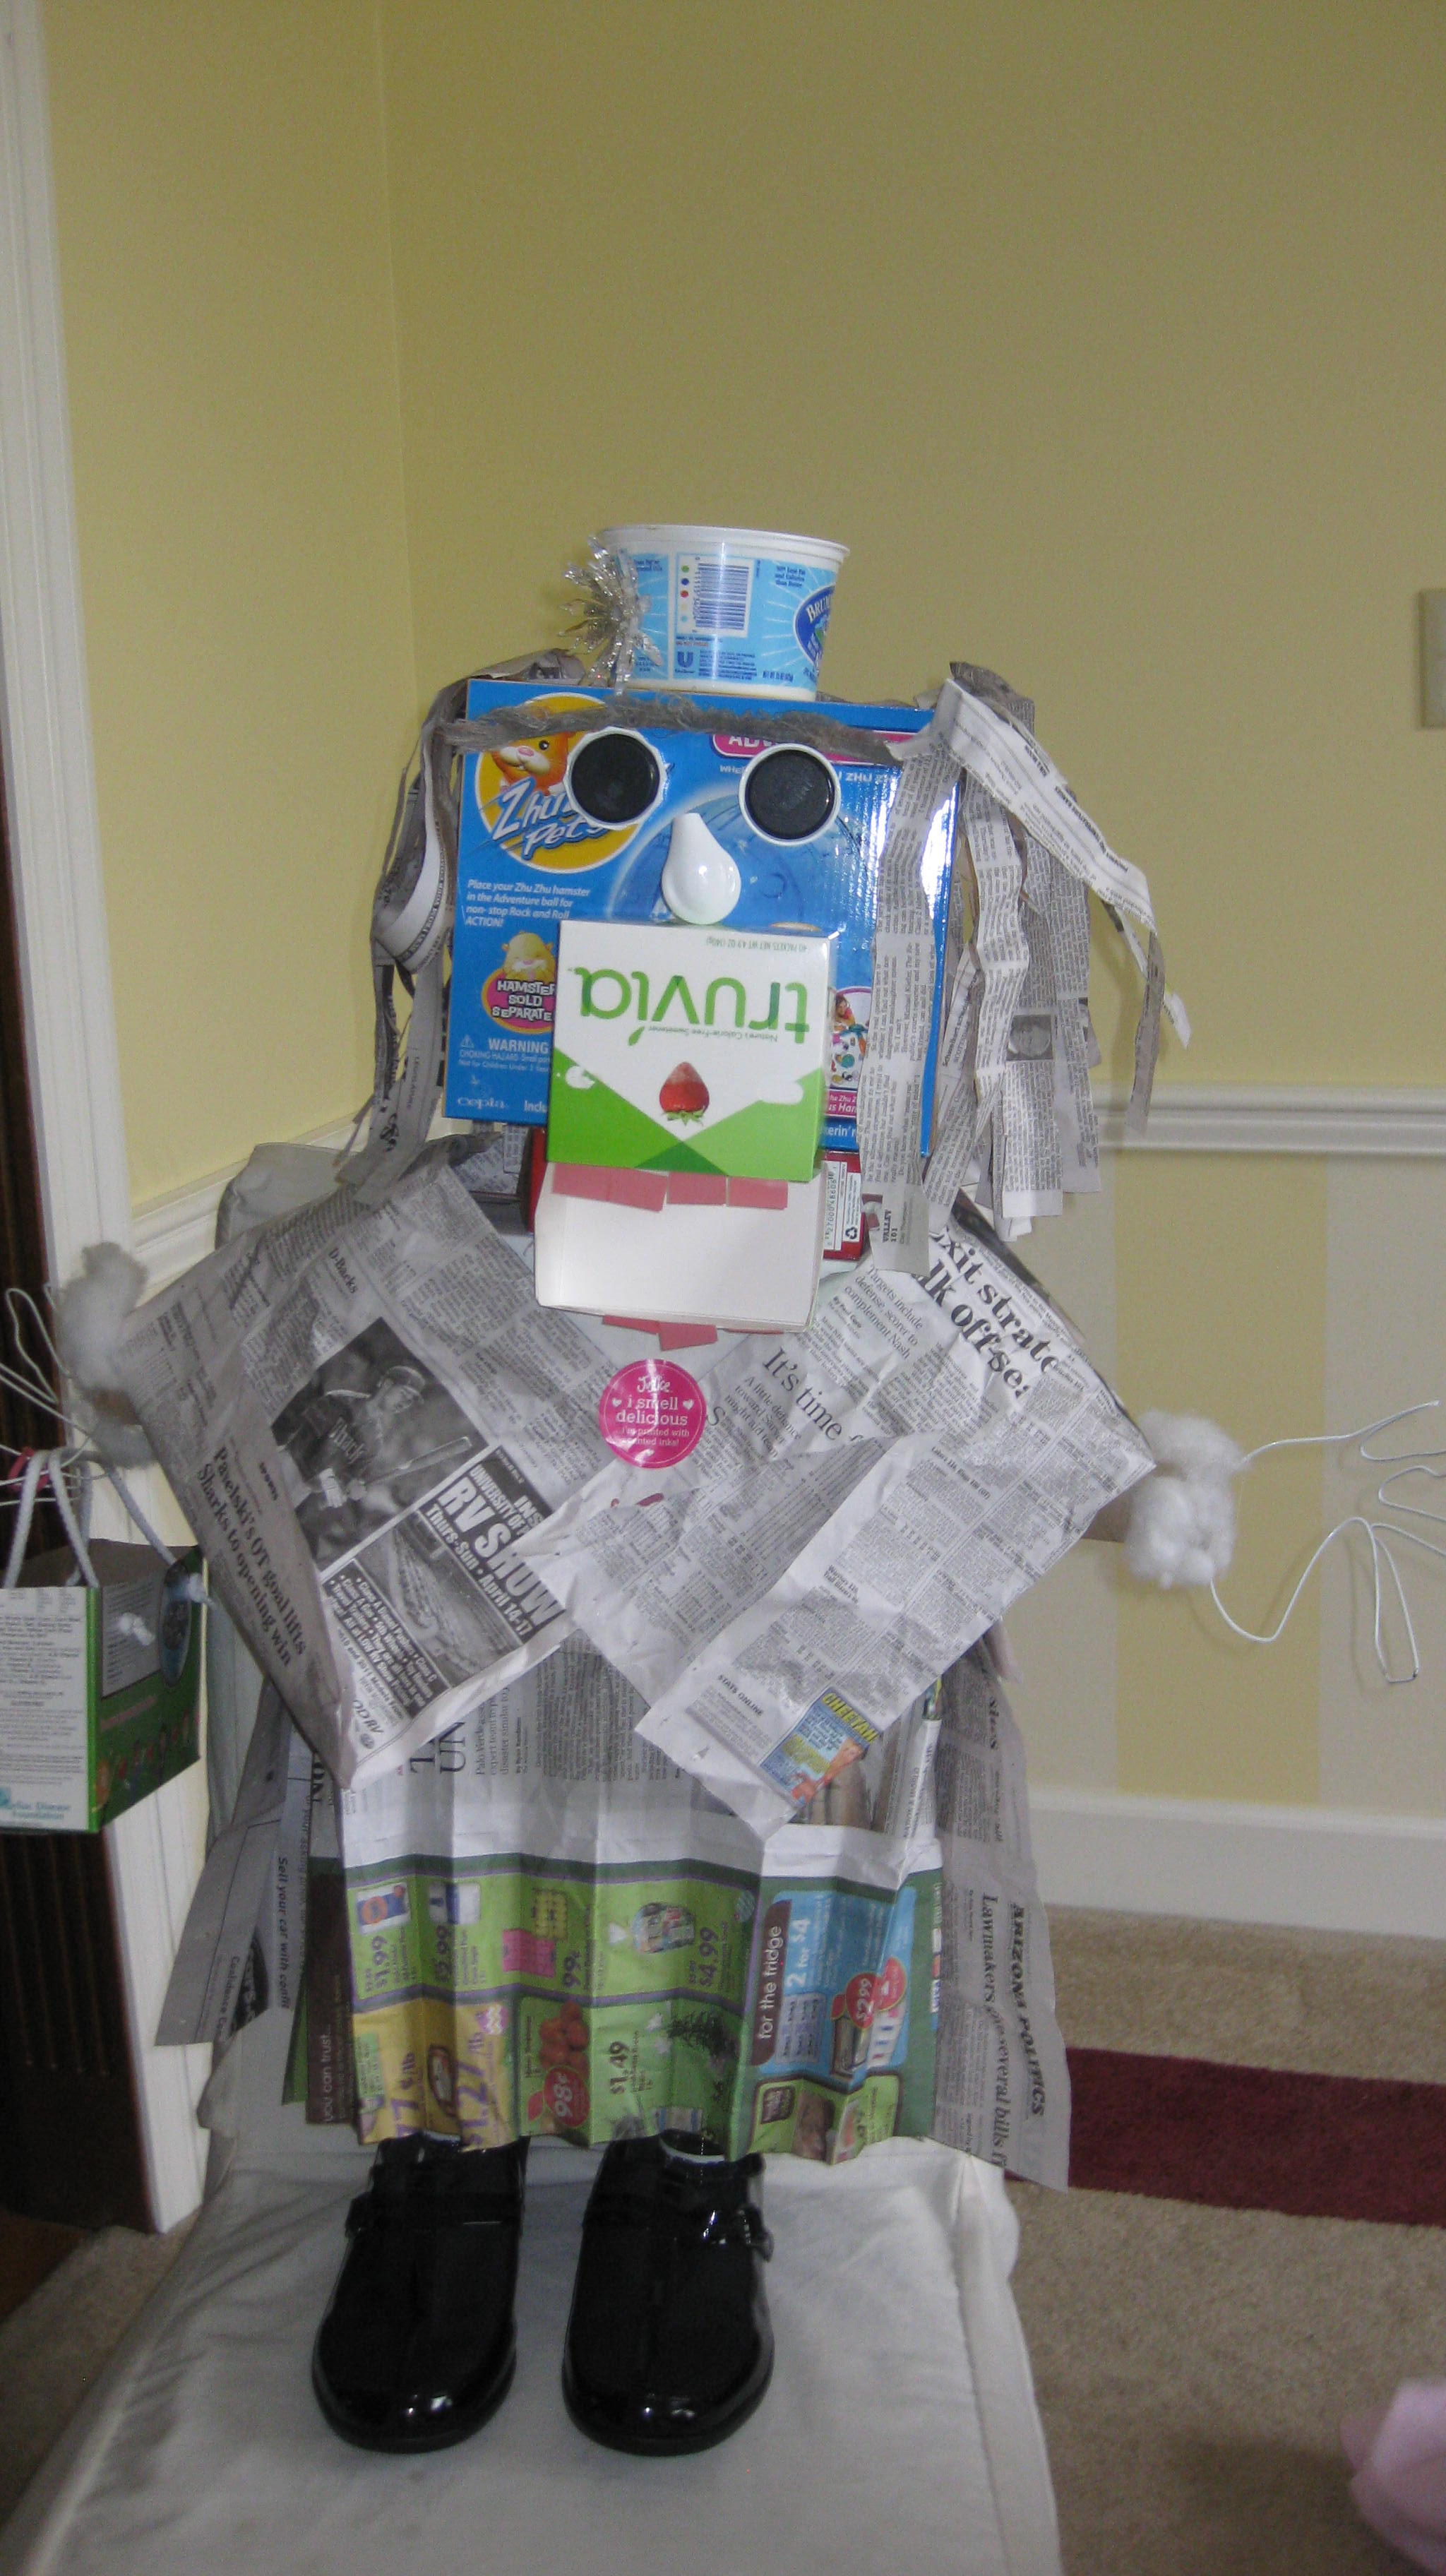 Family school projects recycling brains and hands to for Recycle project ideas